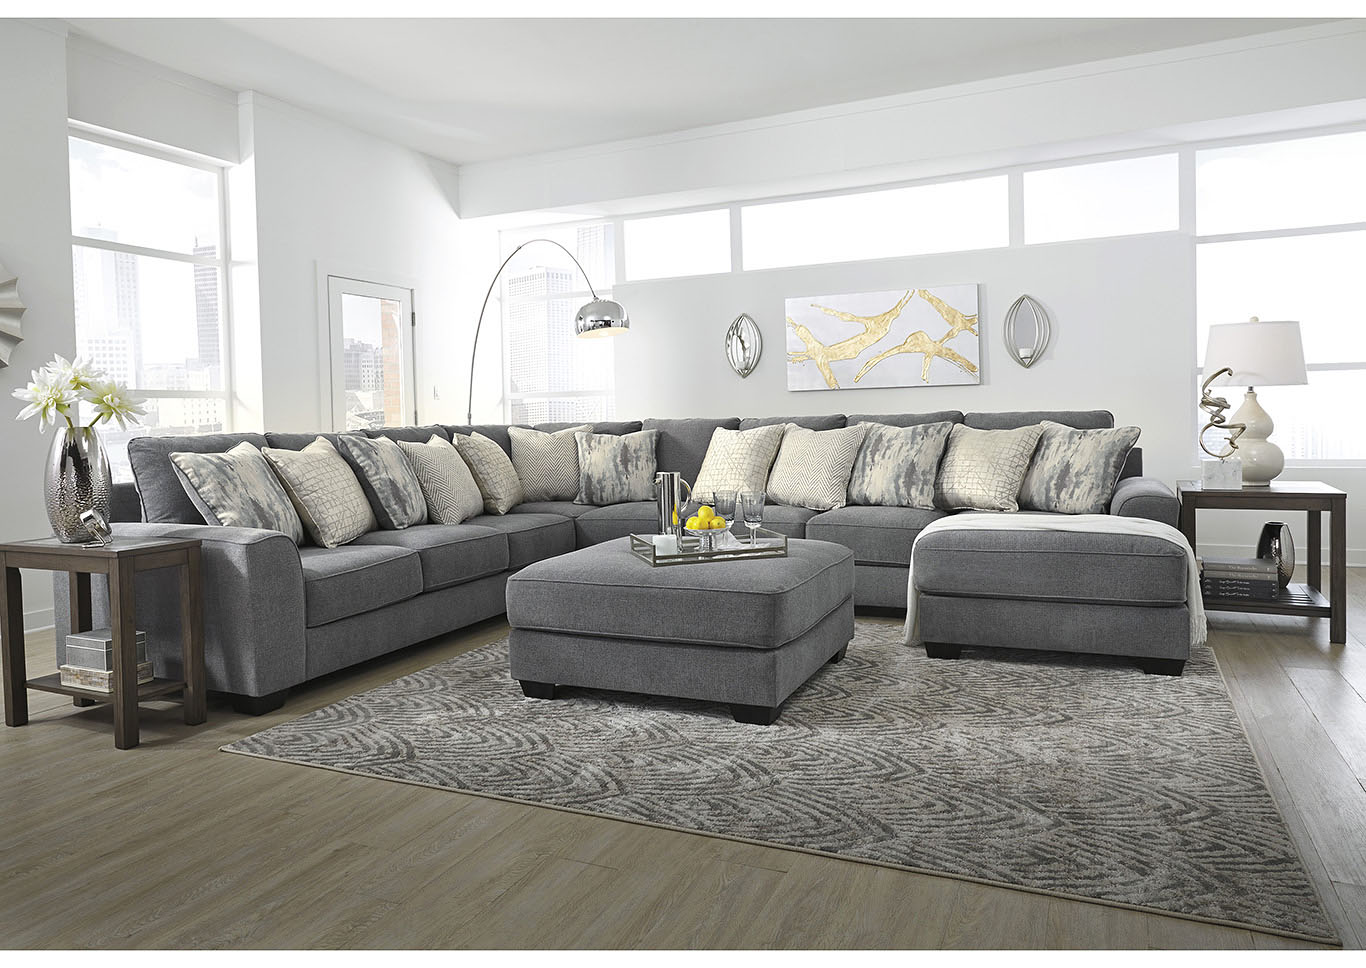 Castano Jewel 5 Piece Raf Chaise Sectional Adams Home Furnishings